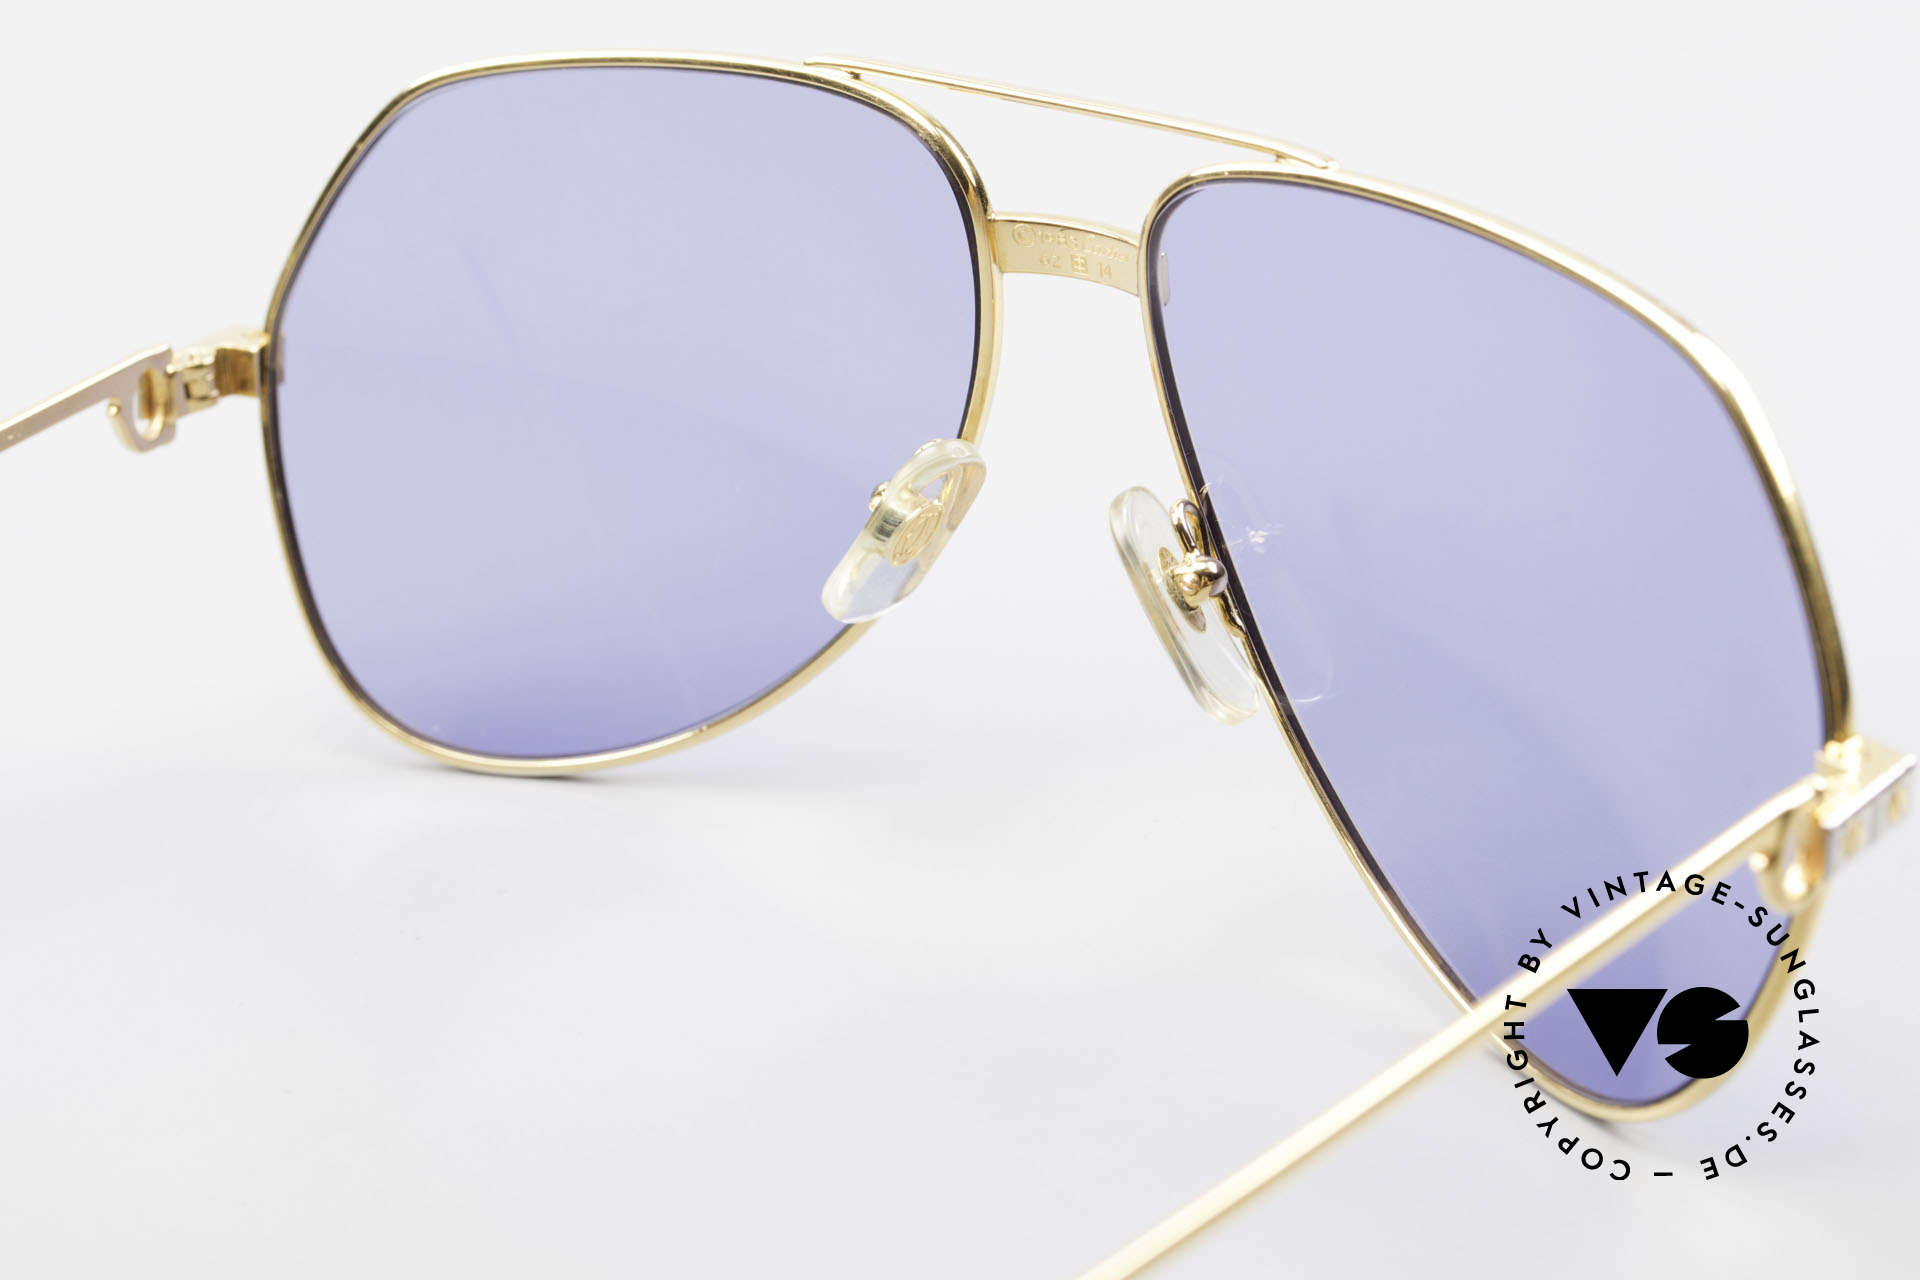 Cartier Vendome Santos - L 80's Luxury Aviator Sunglasses, 2nd hand model, but in mint condition + CARTIER box, Made for Men